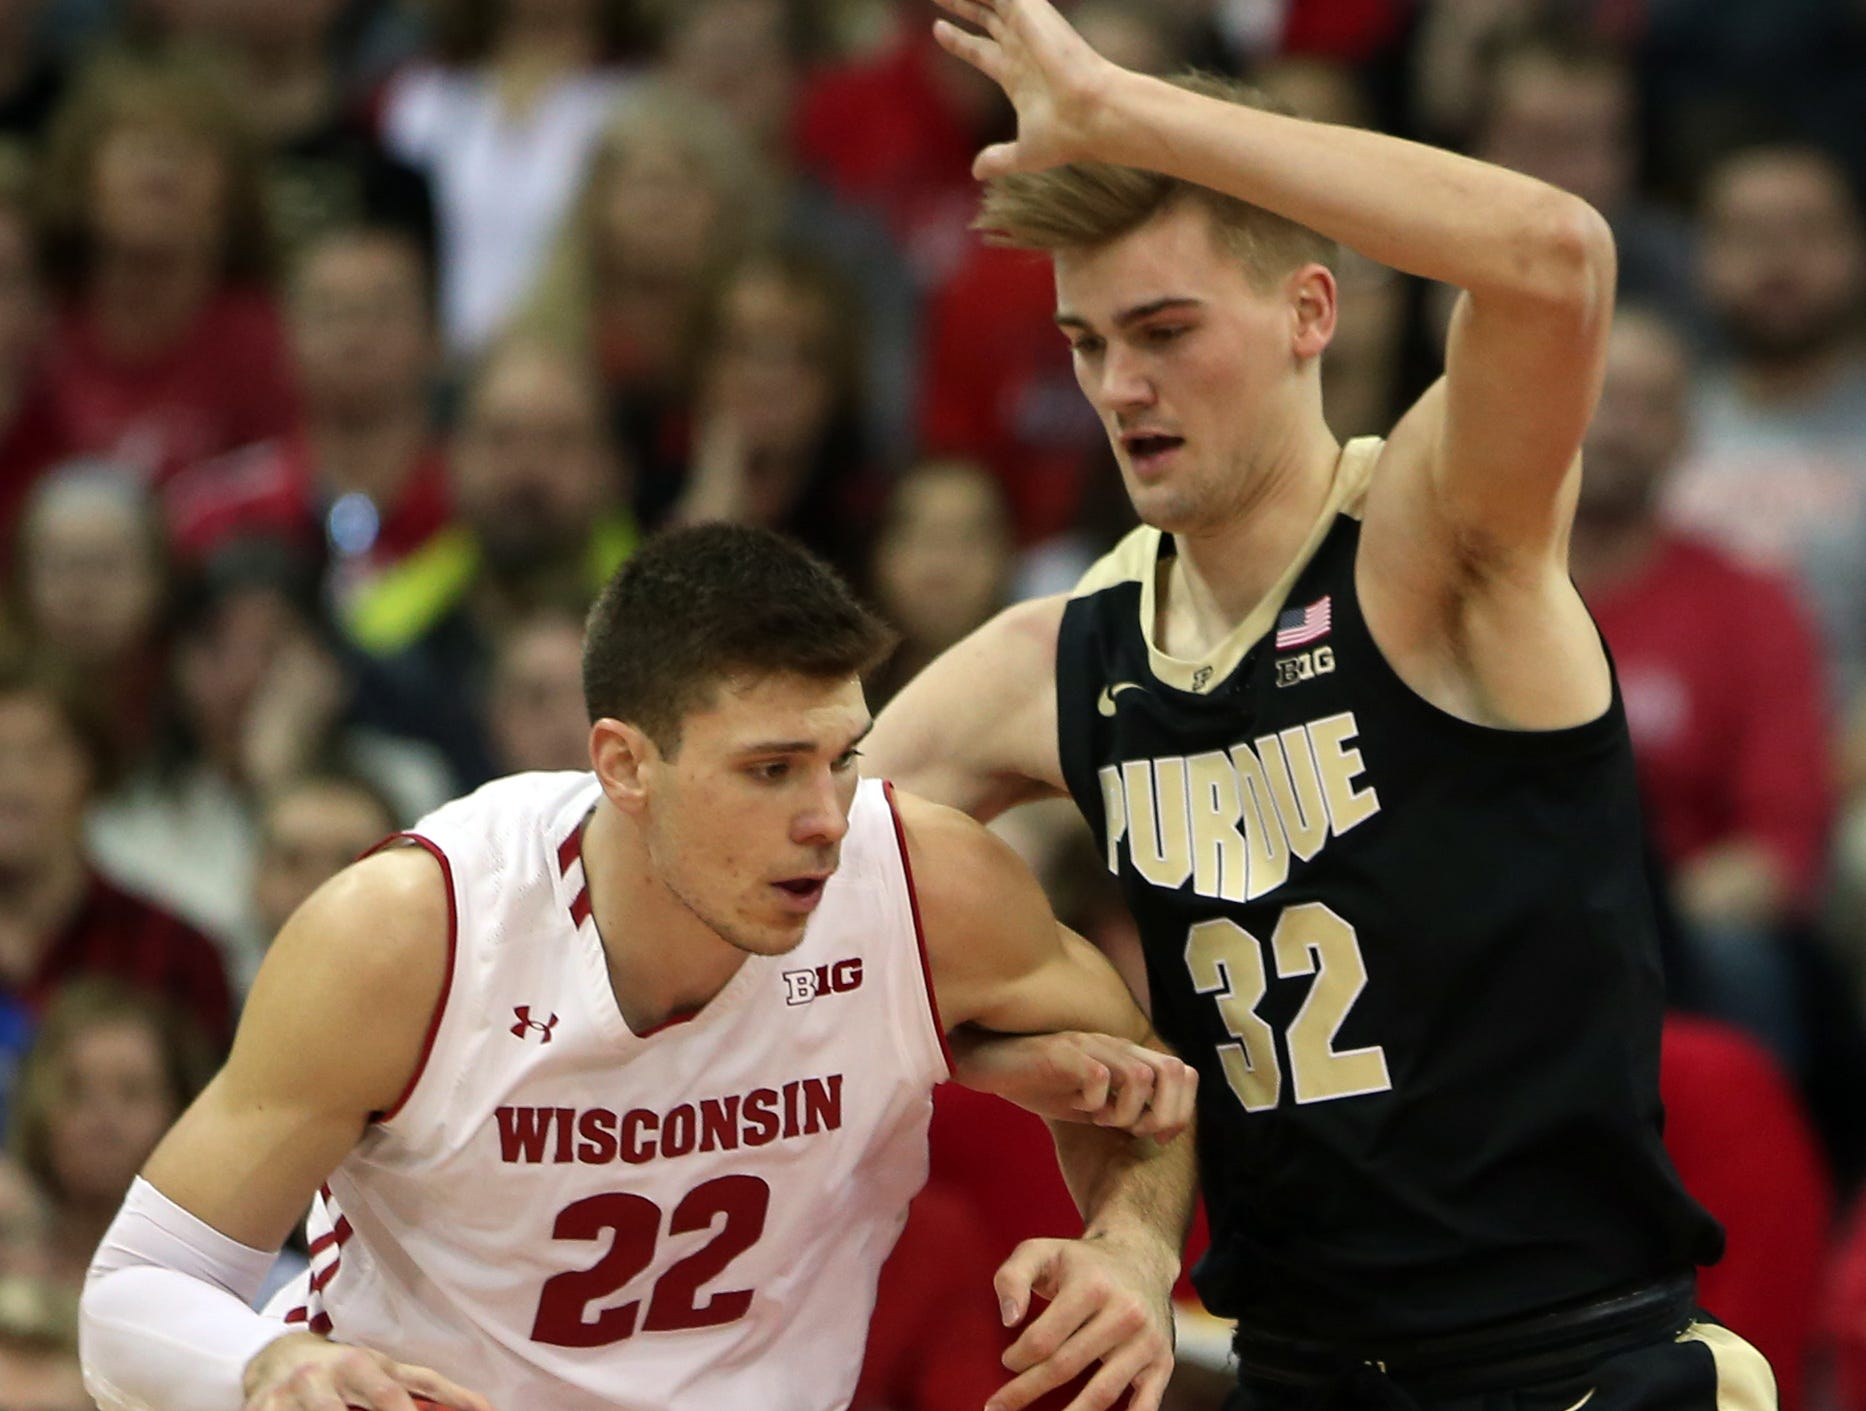 Jan 11, 2019; Madison, WI, USA; Wisconsin Badgers forward Ethan Happ (22) works the ball against Purdue Boilermakers forward Matt Haarms (32) during the first half at the Kohl Center. Mandatory Credit: Mary Langenfeld-USA TODAY Sports